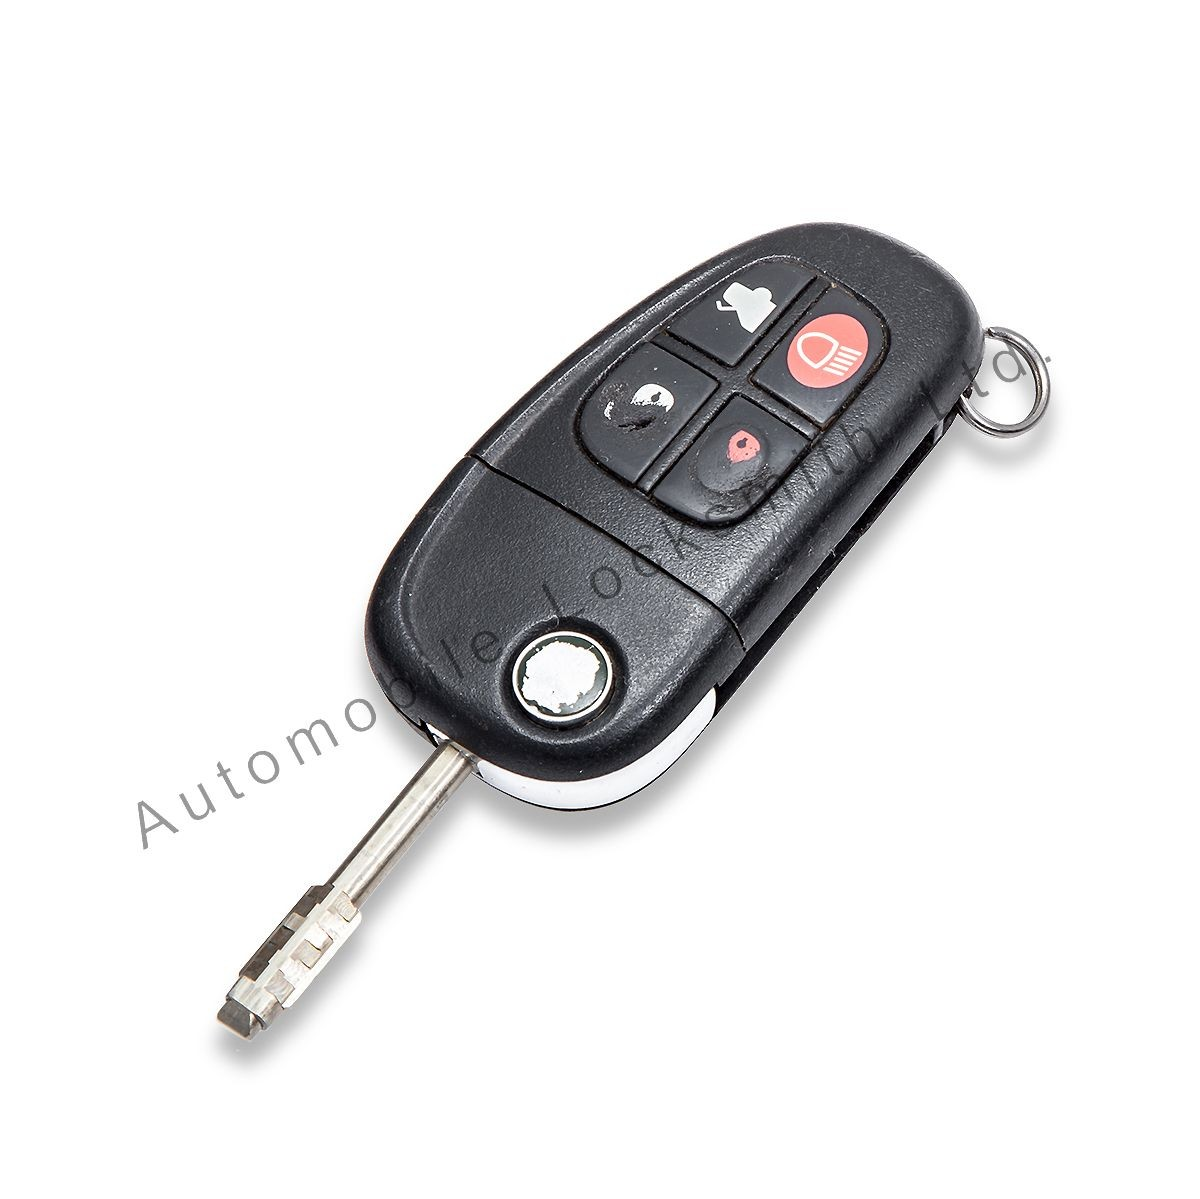 Repair Refurbishment Service for Jaguar X-Type S-Type XJ XJR 4 button remote key